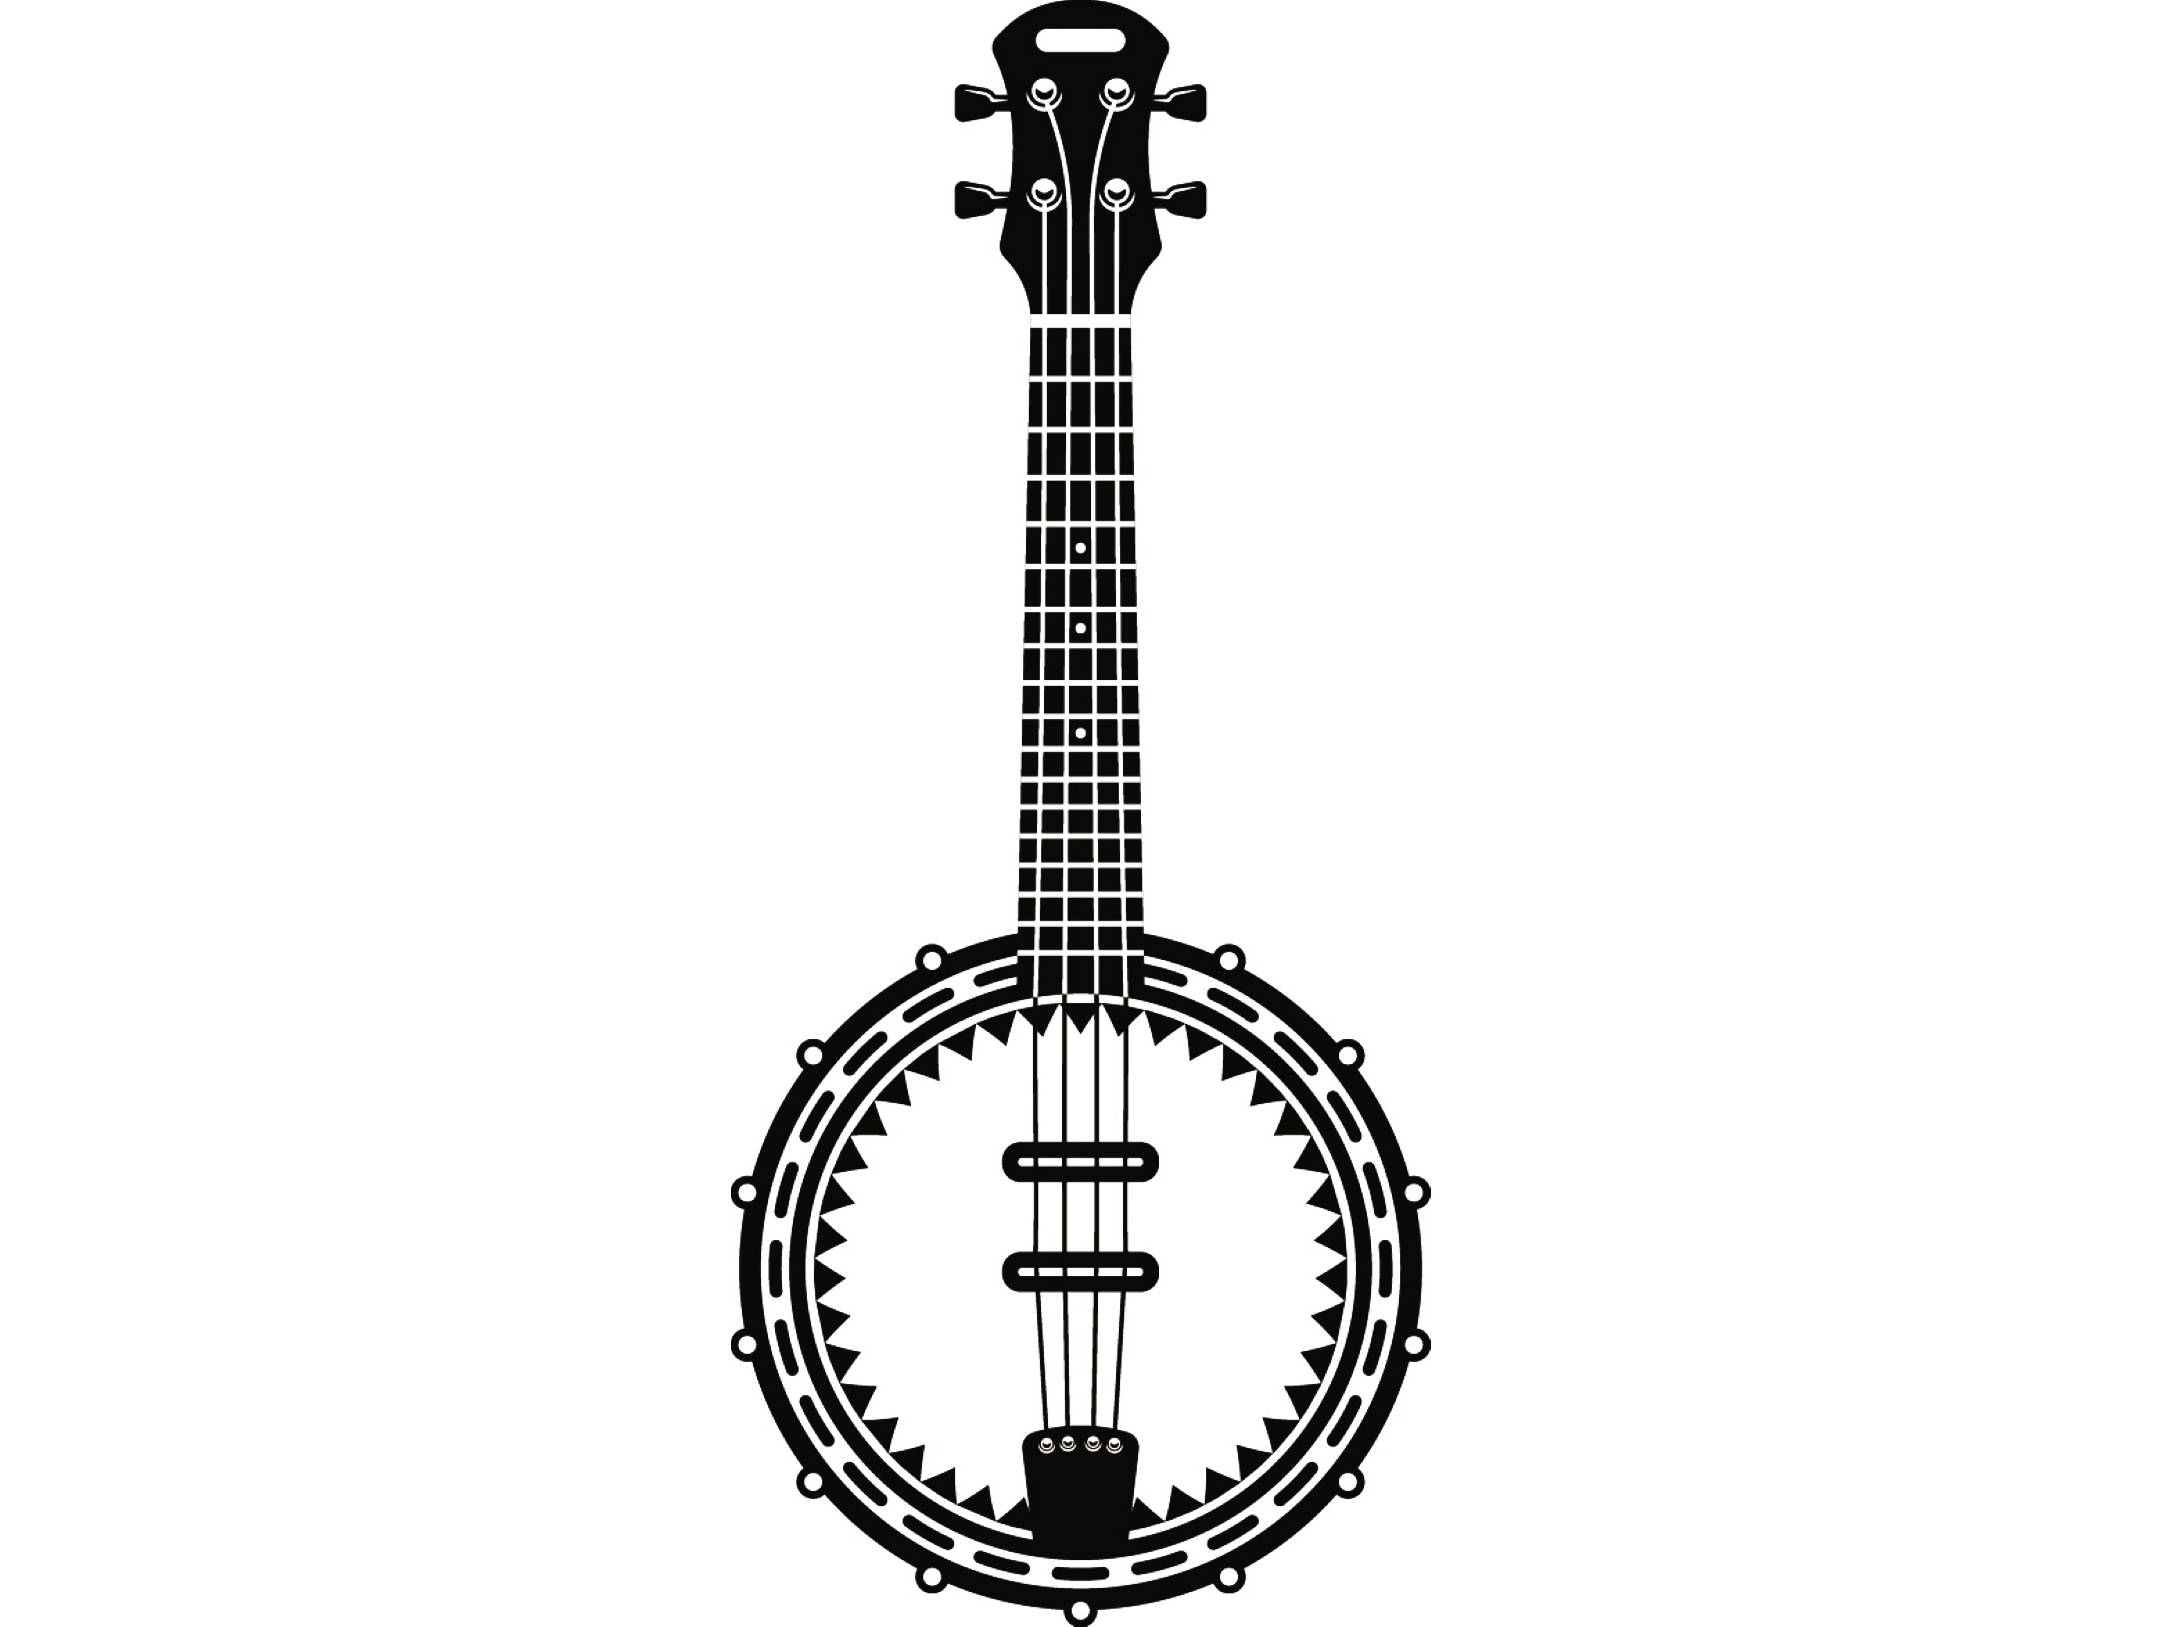 Musical instrument strings rock. Banjo clipart black and white